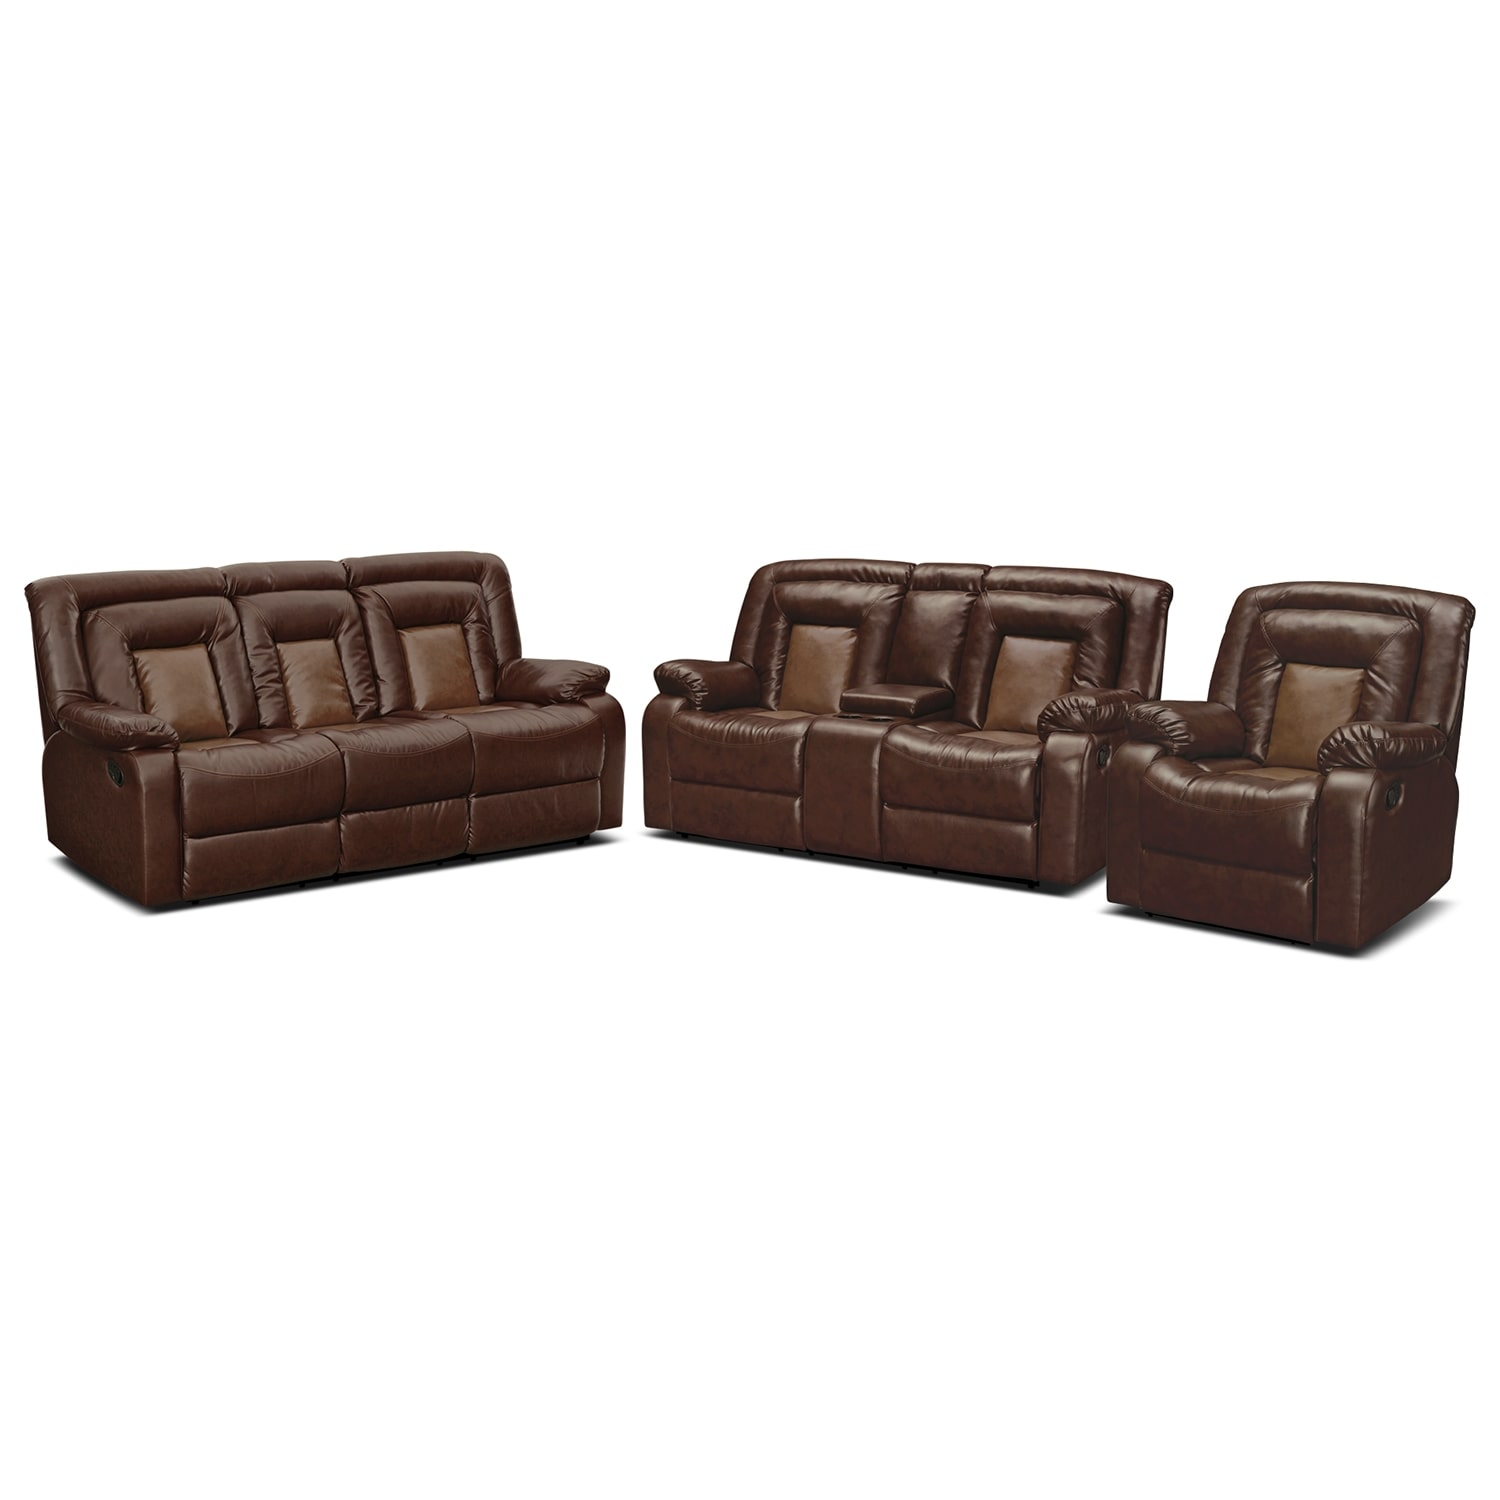 Living Room Furniture - Cobra 3 Pc. Reclining Living Room